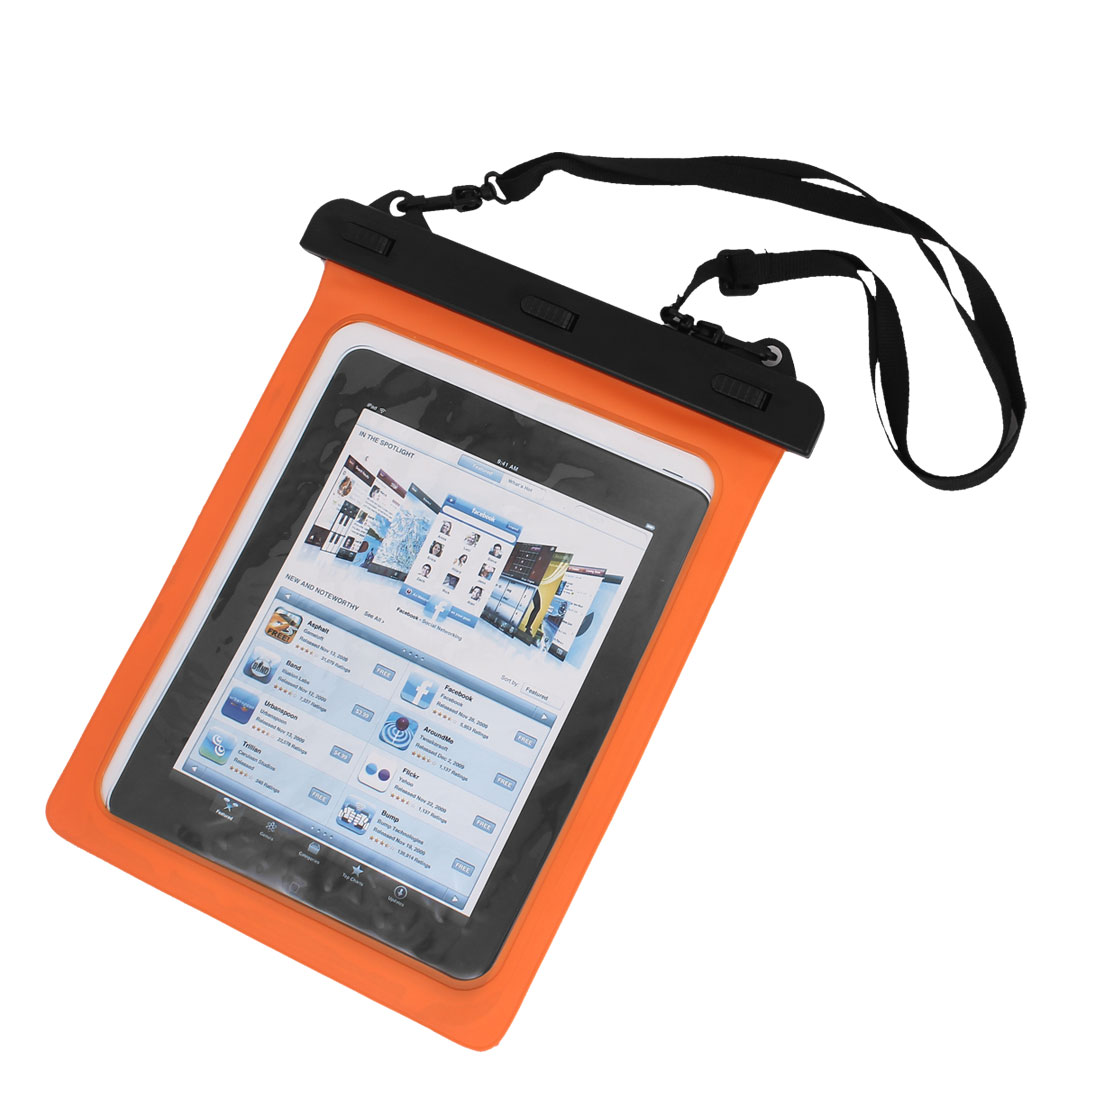 Waterproof Bag Case Holder Pouch Orange for iPad air 2 w Neck Strap